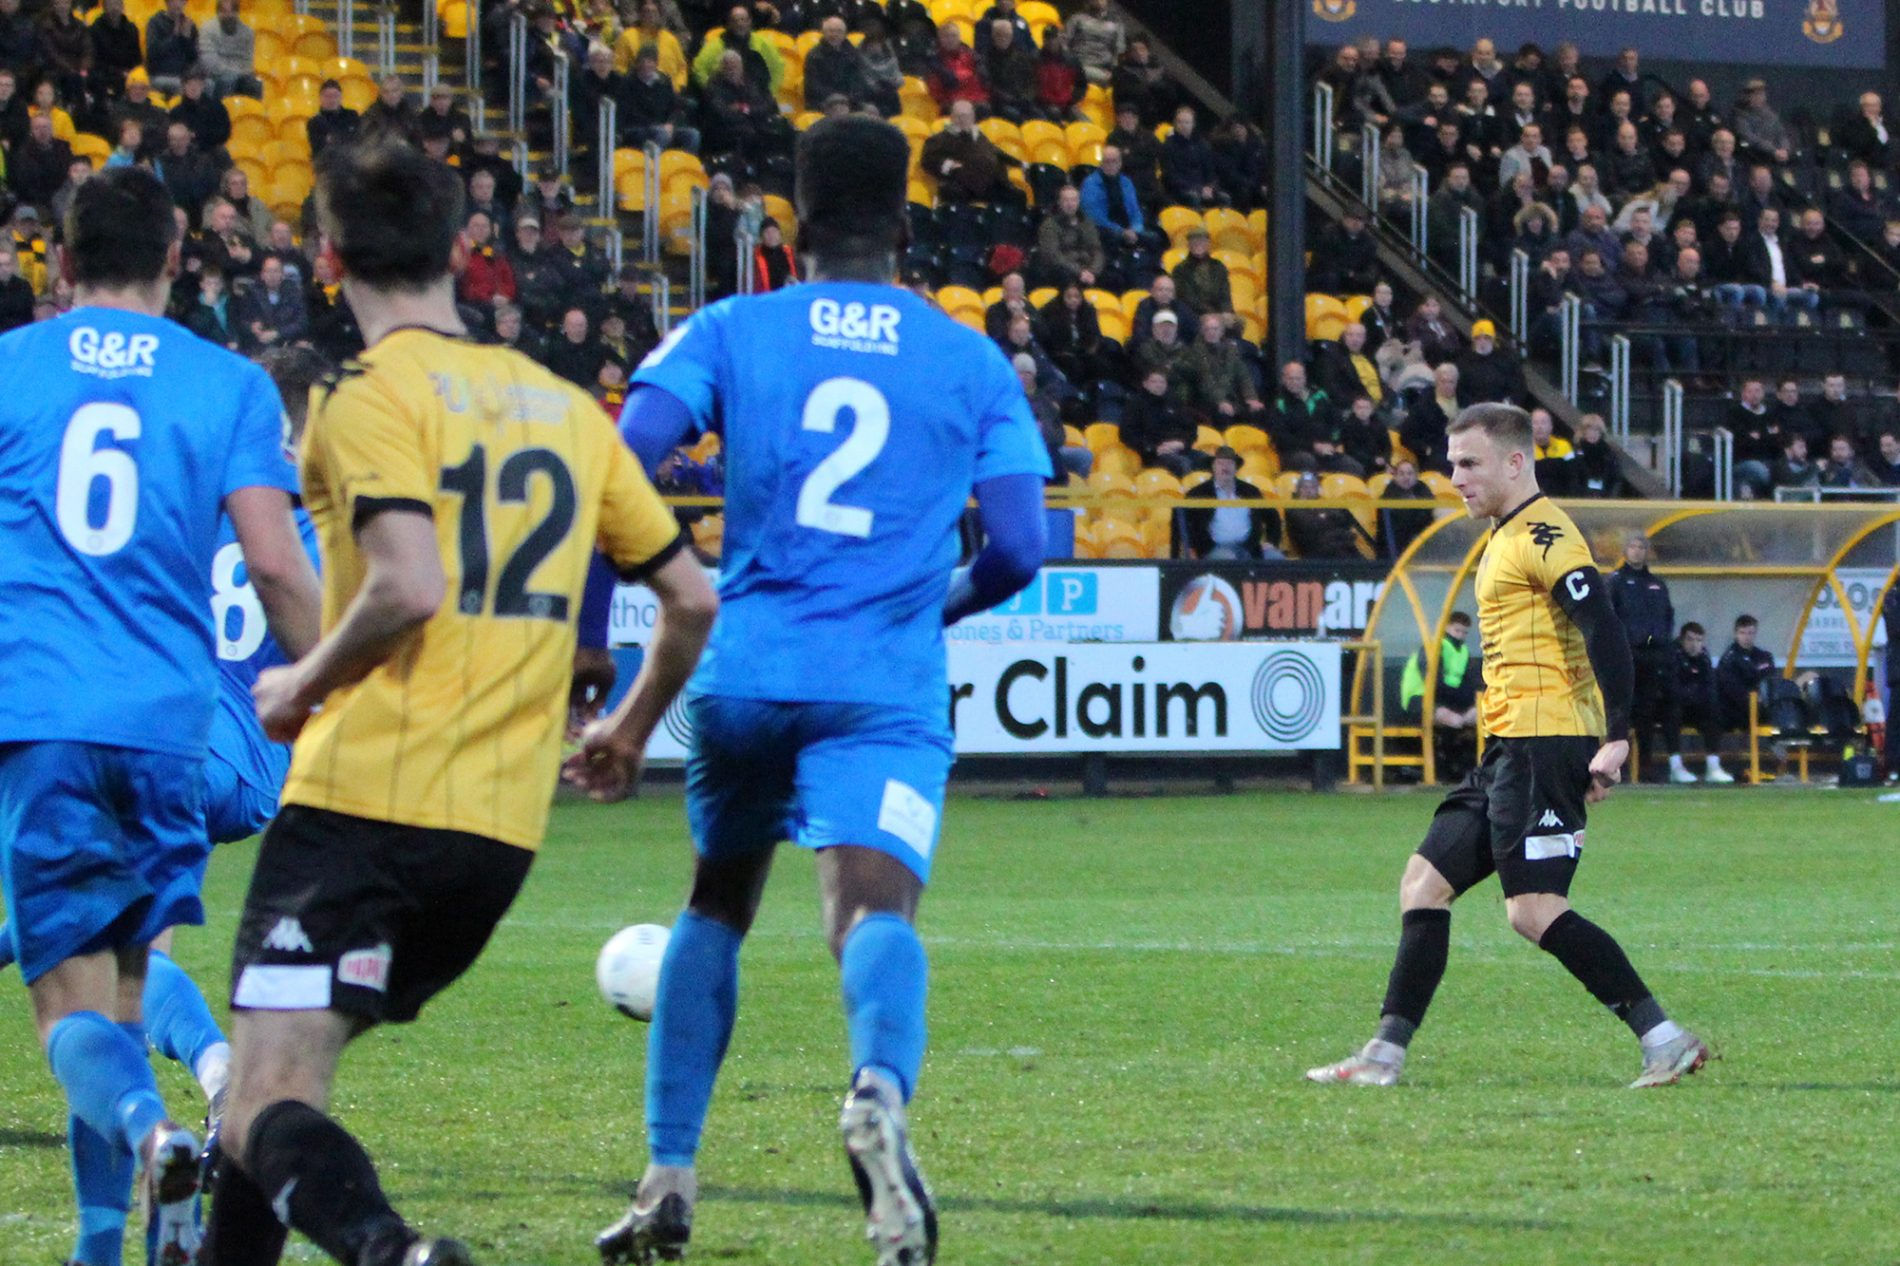 INTERVIEWS | Liam And Marcus Wood After Leamington